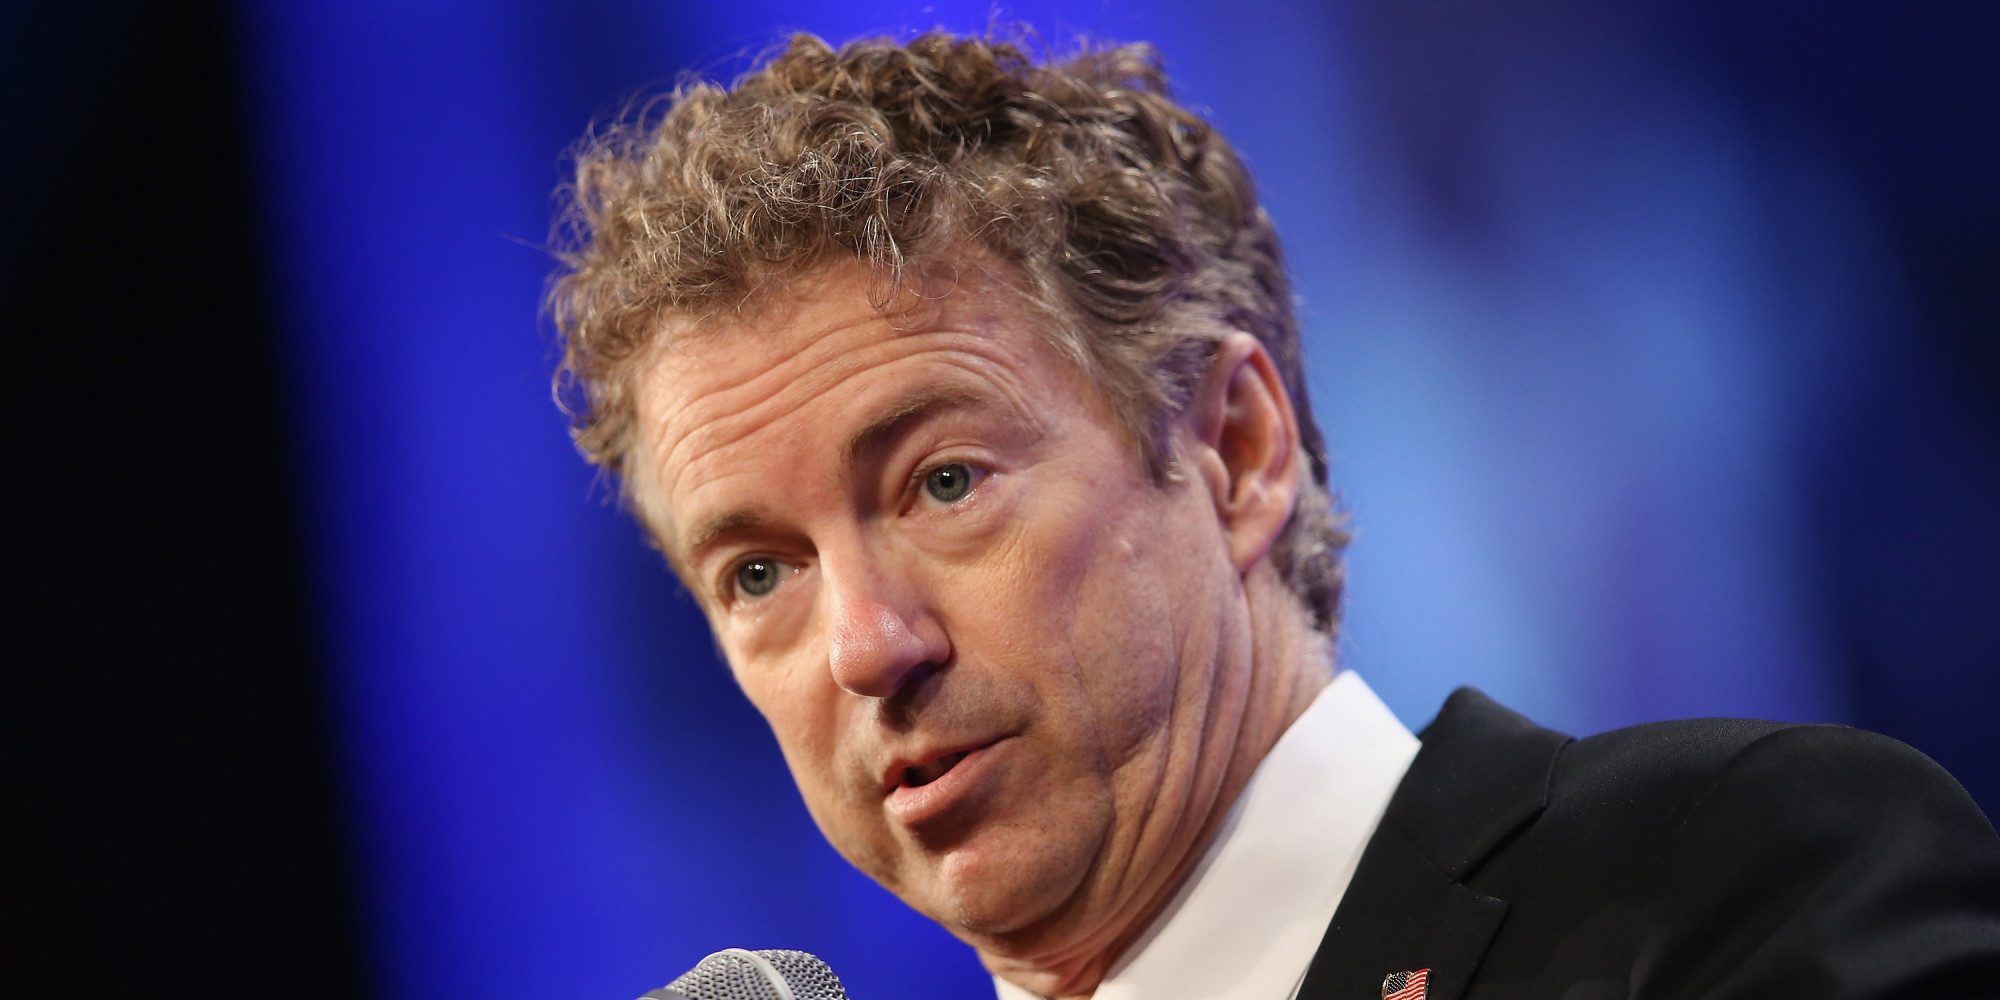 rand paul - photo #18